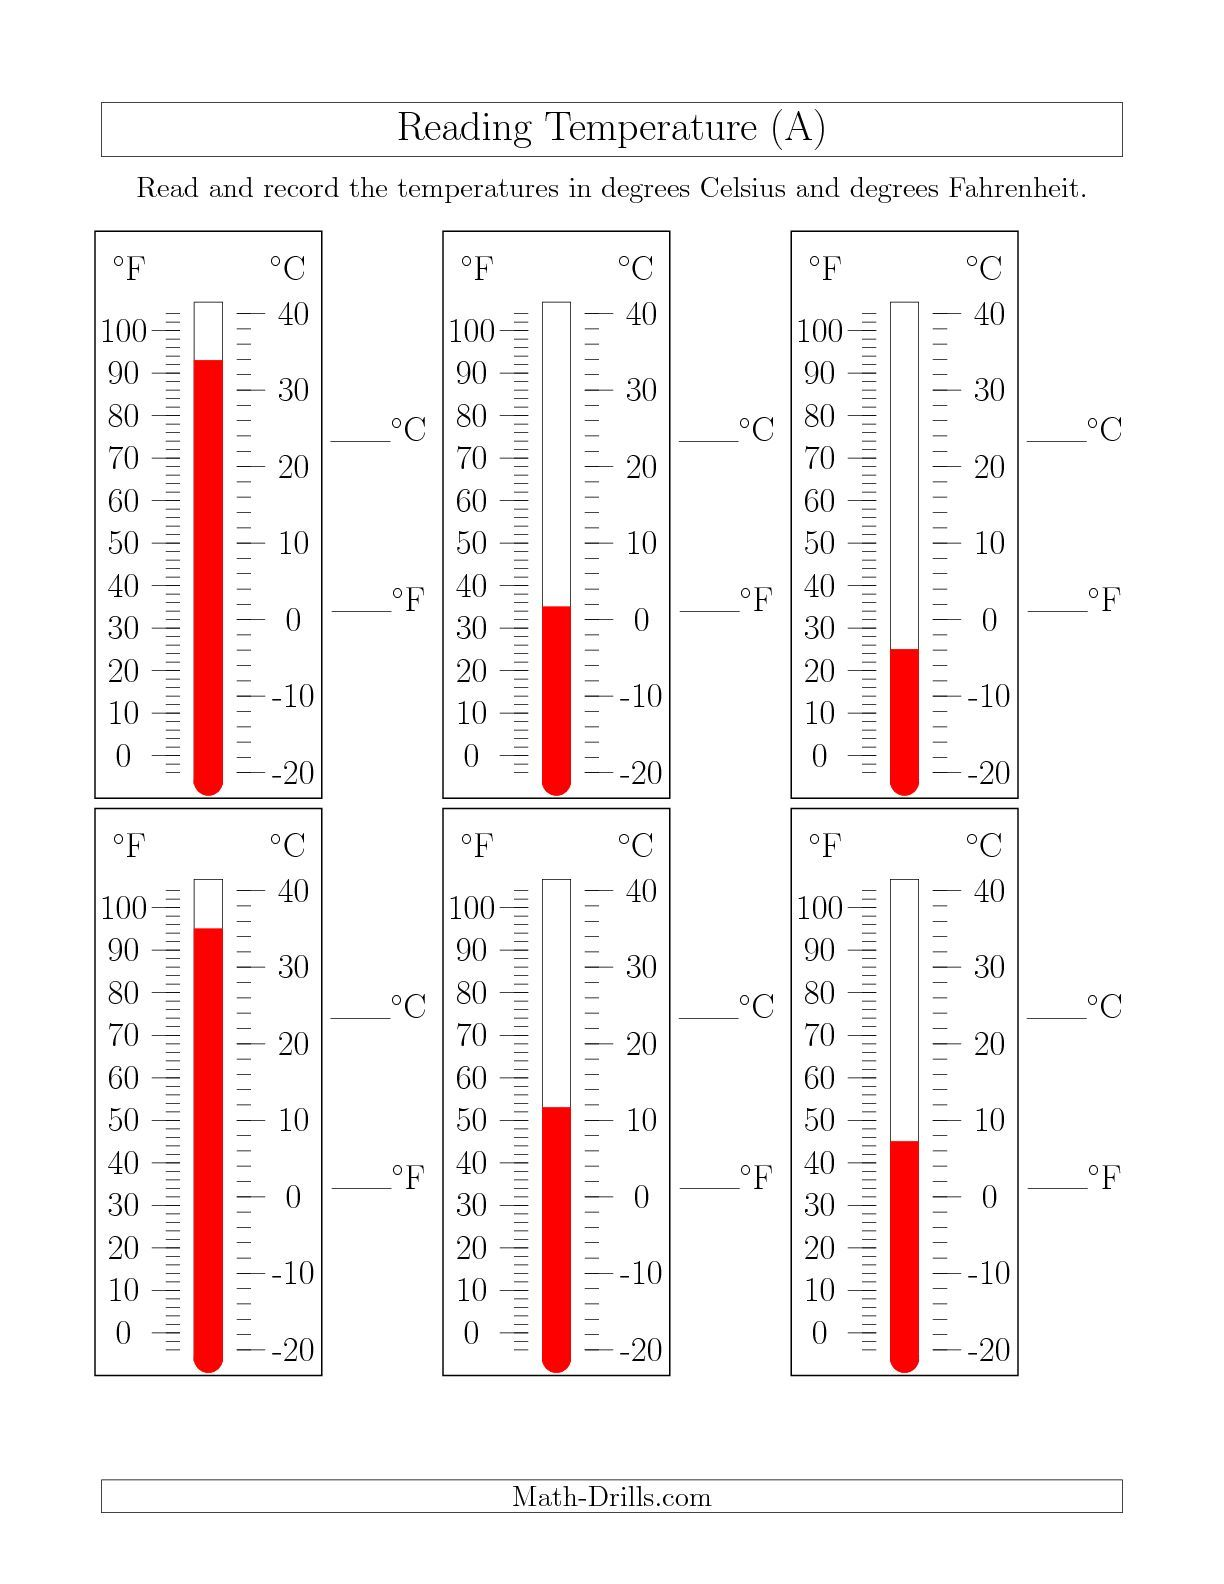 The Reading Temperatures From Thermometers A